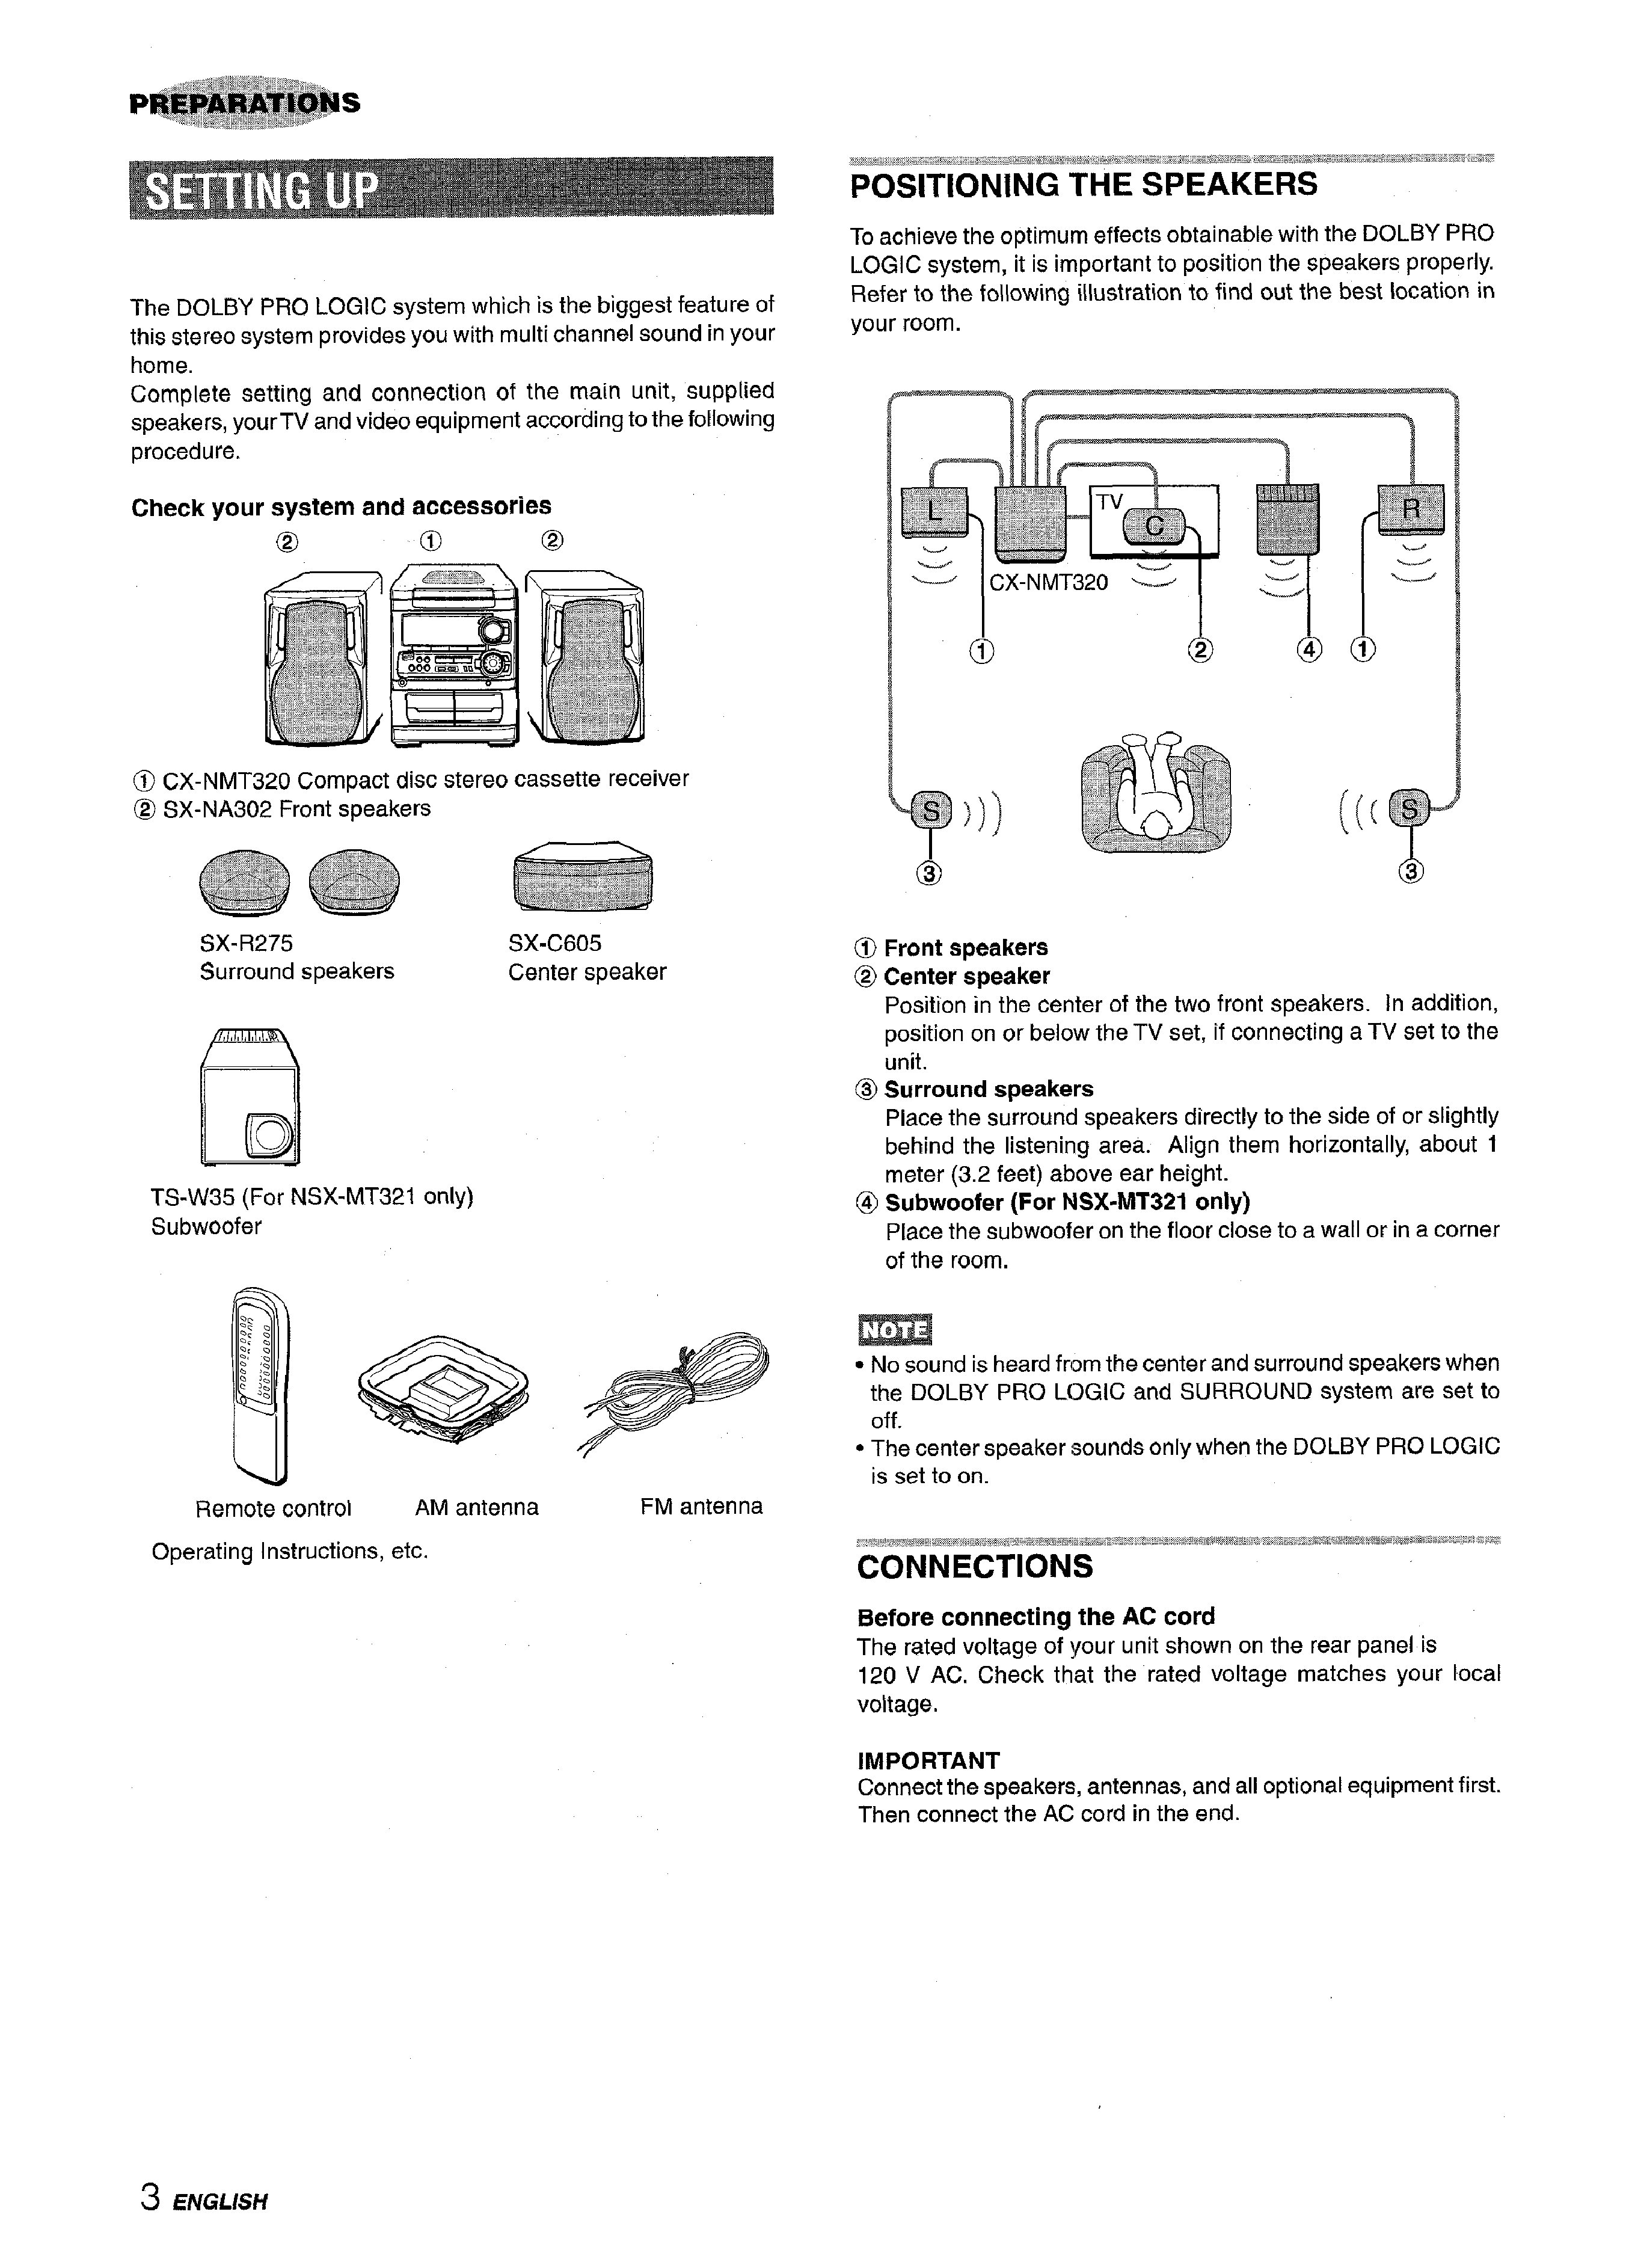 Aiwa Ts W35u Wiring Diagram Free For You 95 Aspire Simple Schema Rh 38 Atlantis De Whirlpool Diagrams